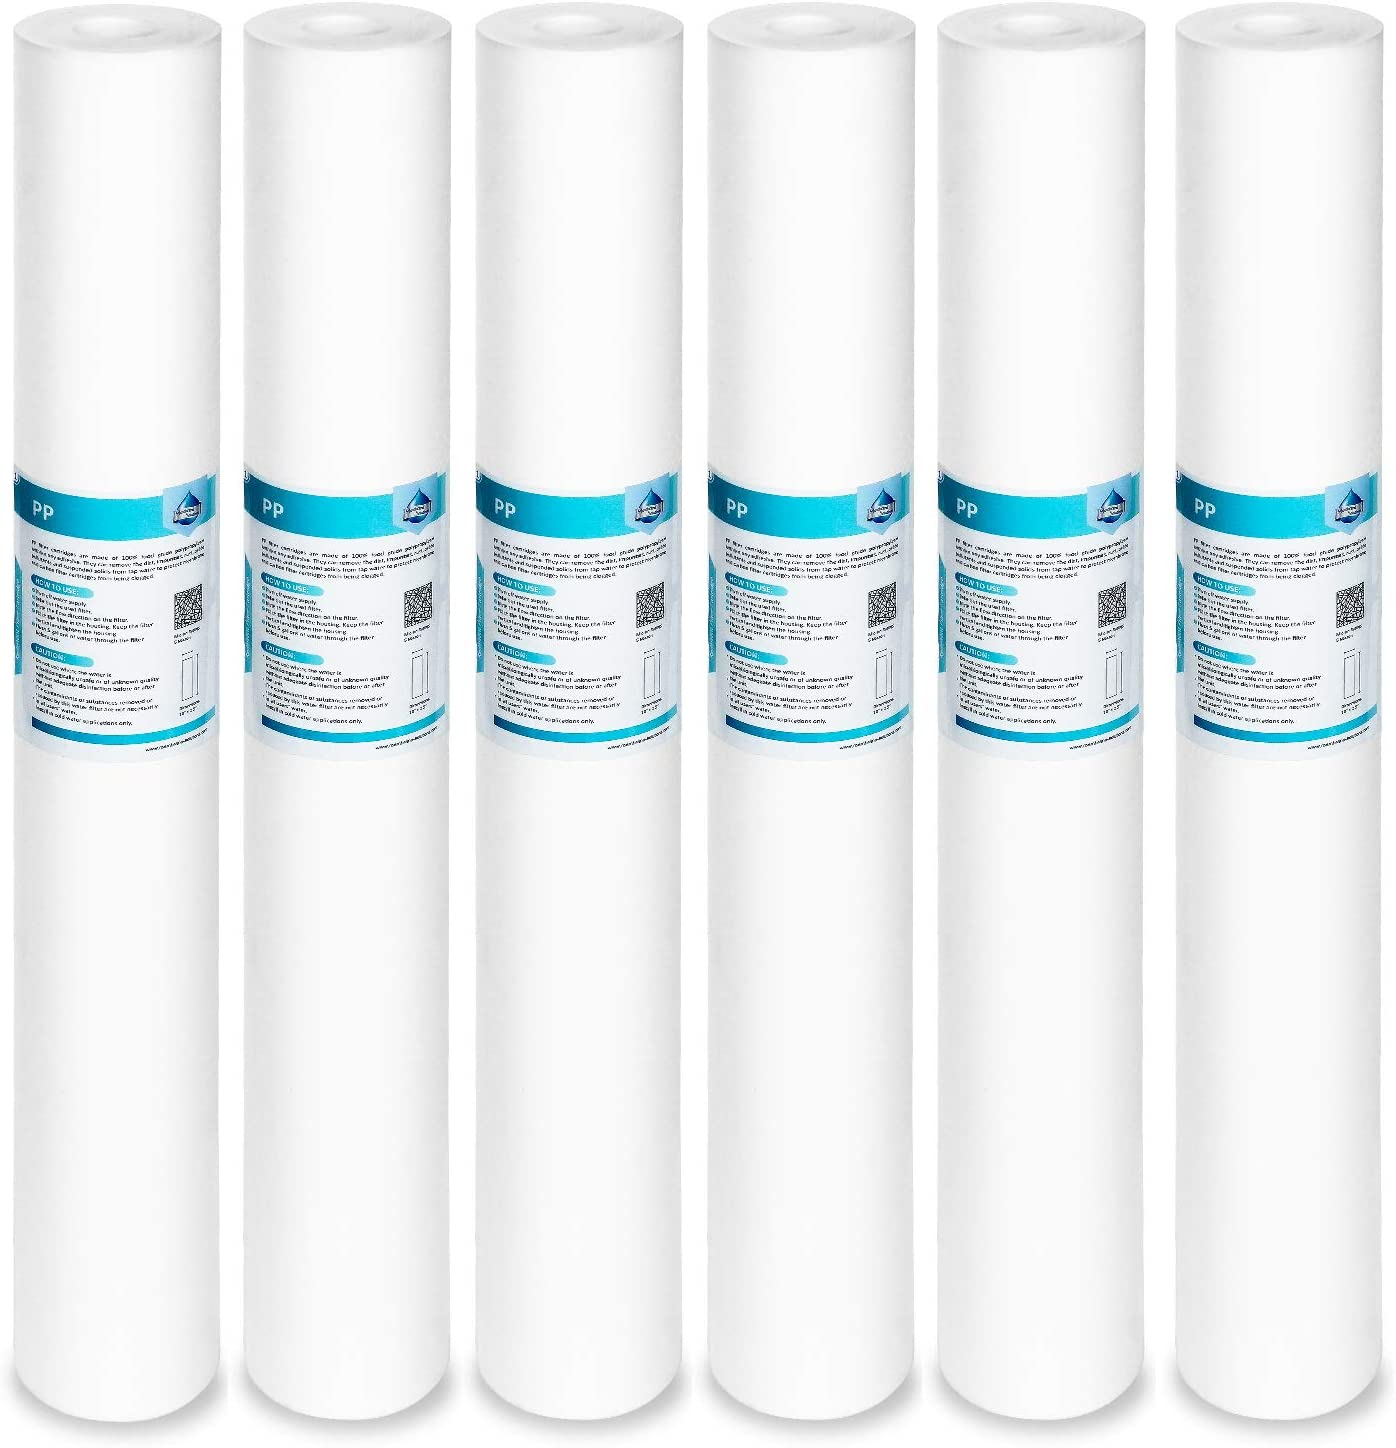 "Membrane Solutions 5 Micron Sediment Water Filter Replacement Polypropylene Cartridge 20""x2.5"" for Whole House Filter System - 6 Pack"